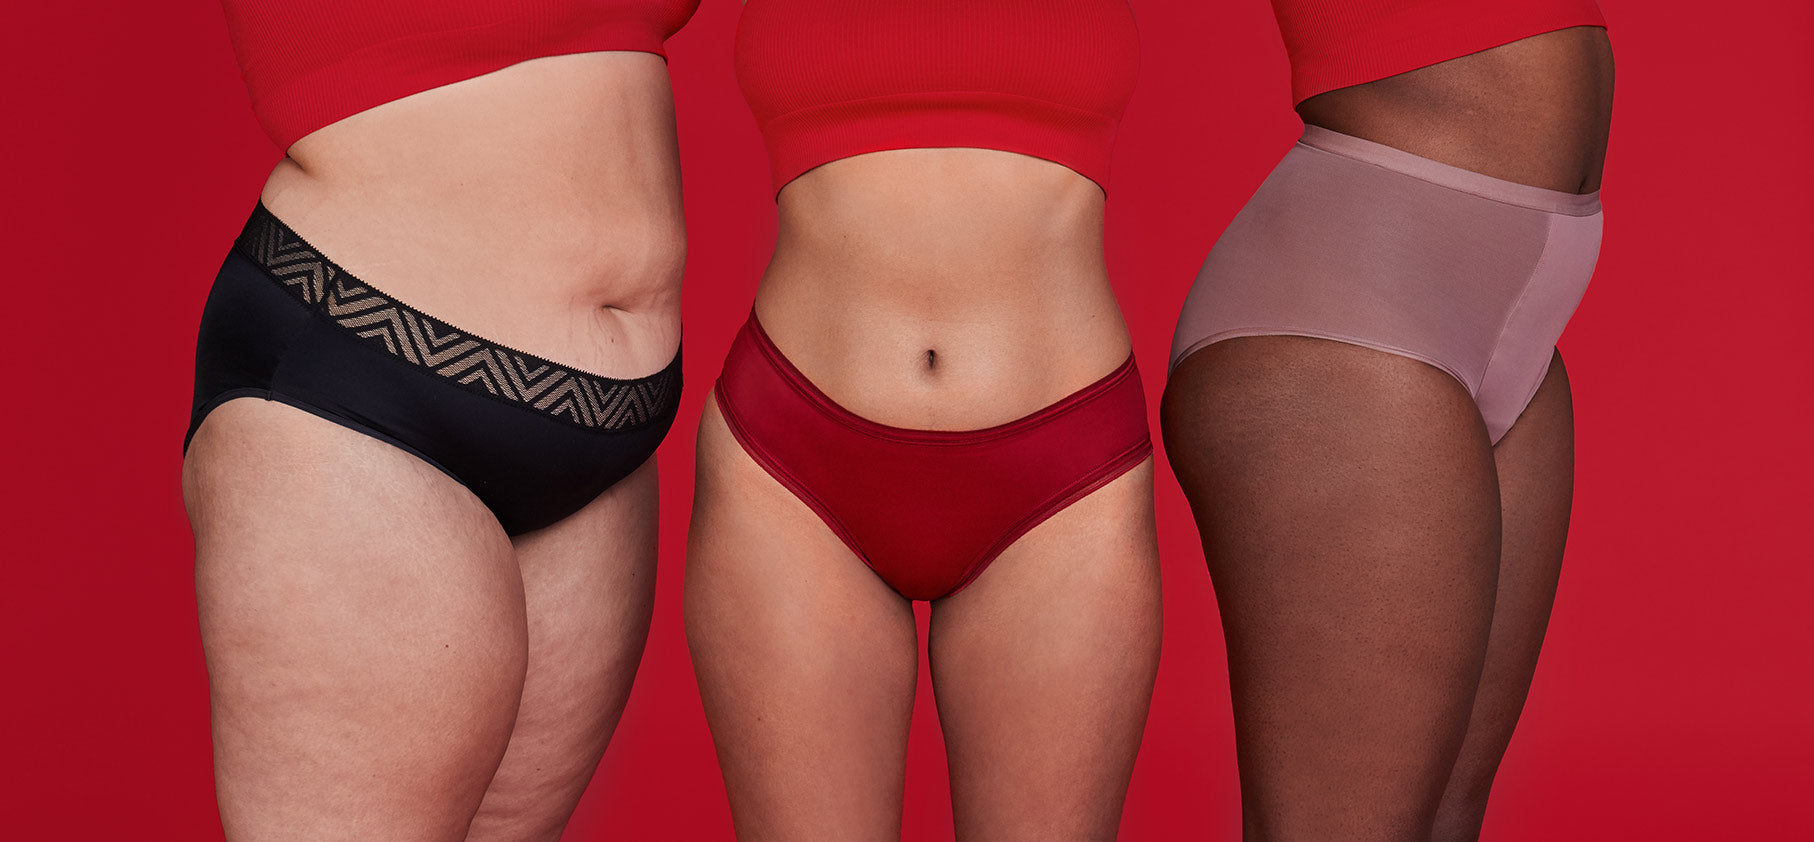 small image with three women modeling Thinx Hiphugger in Black, Thinx Hi-Waist in Dusk and Thinx Cheeky in Crimson